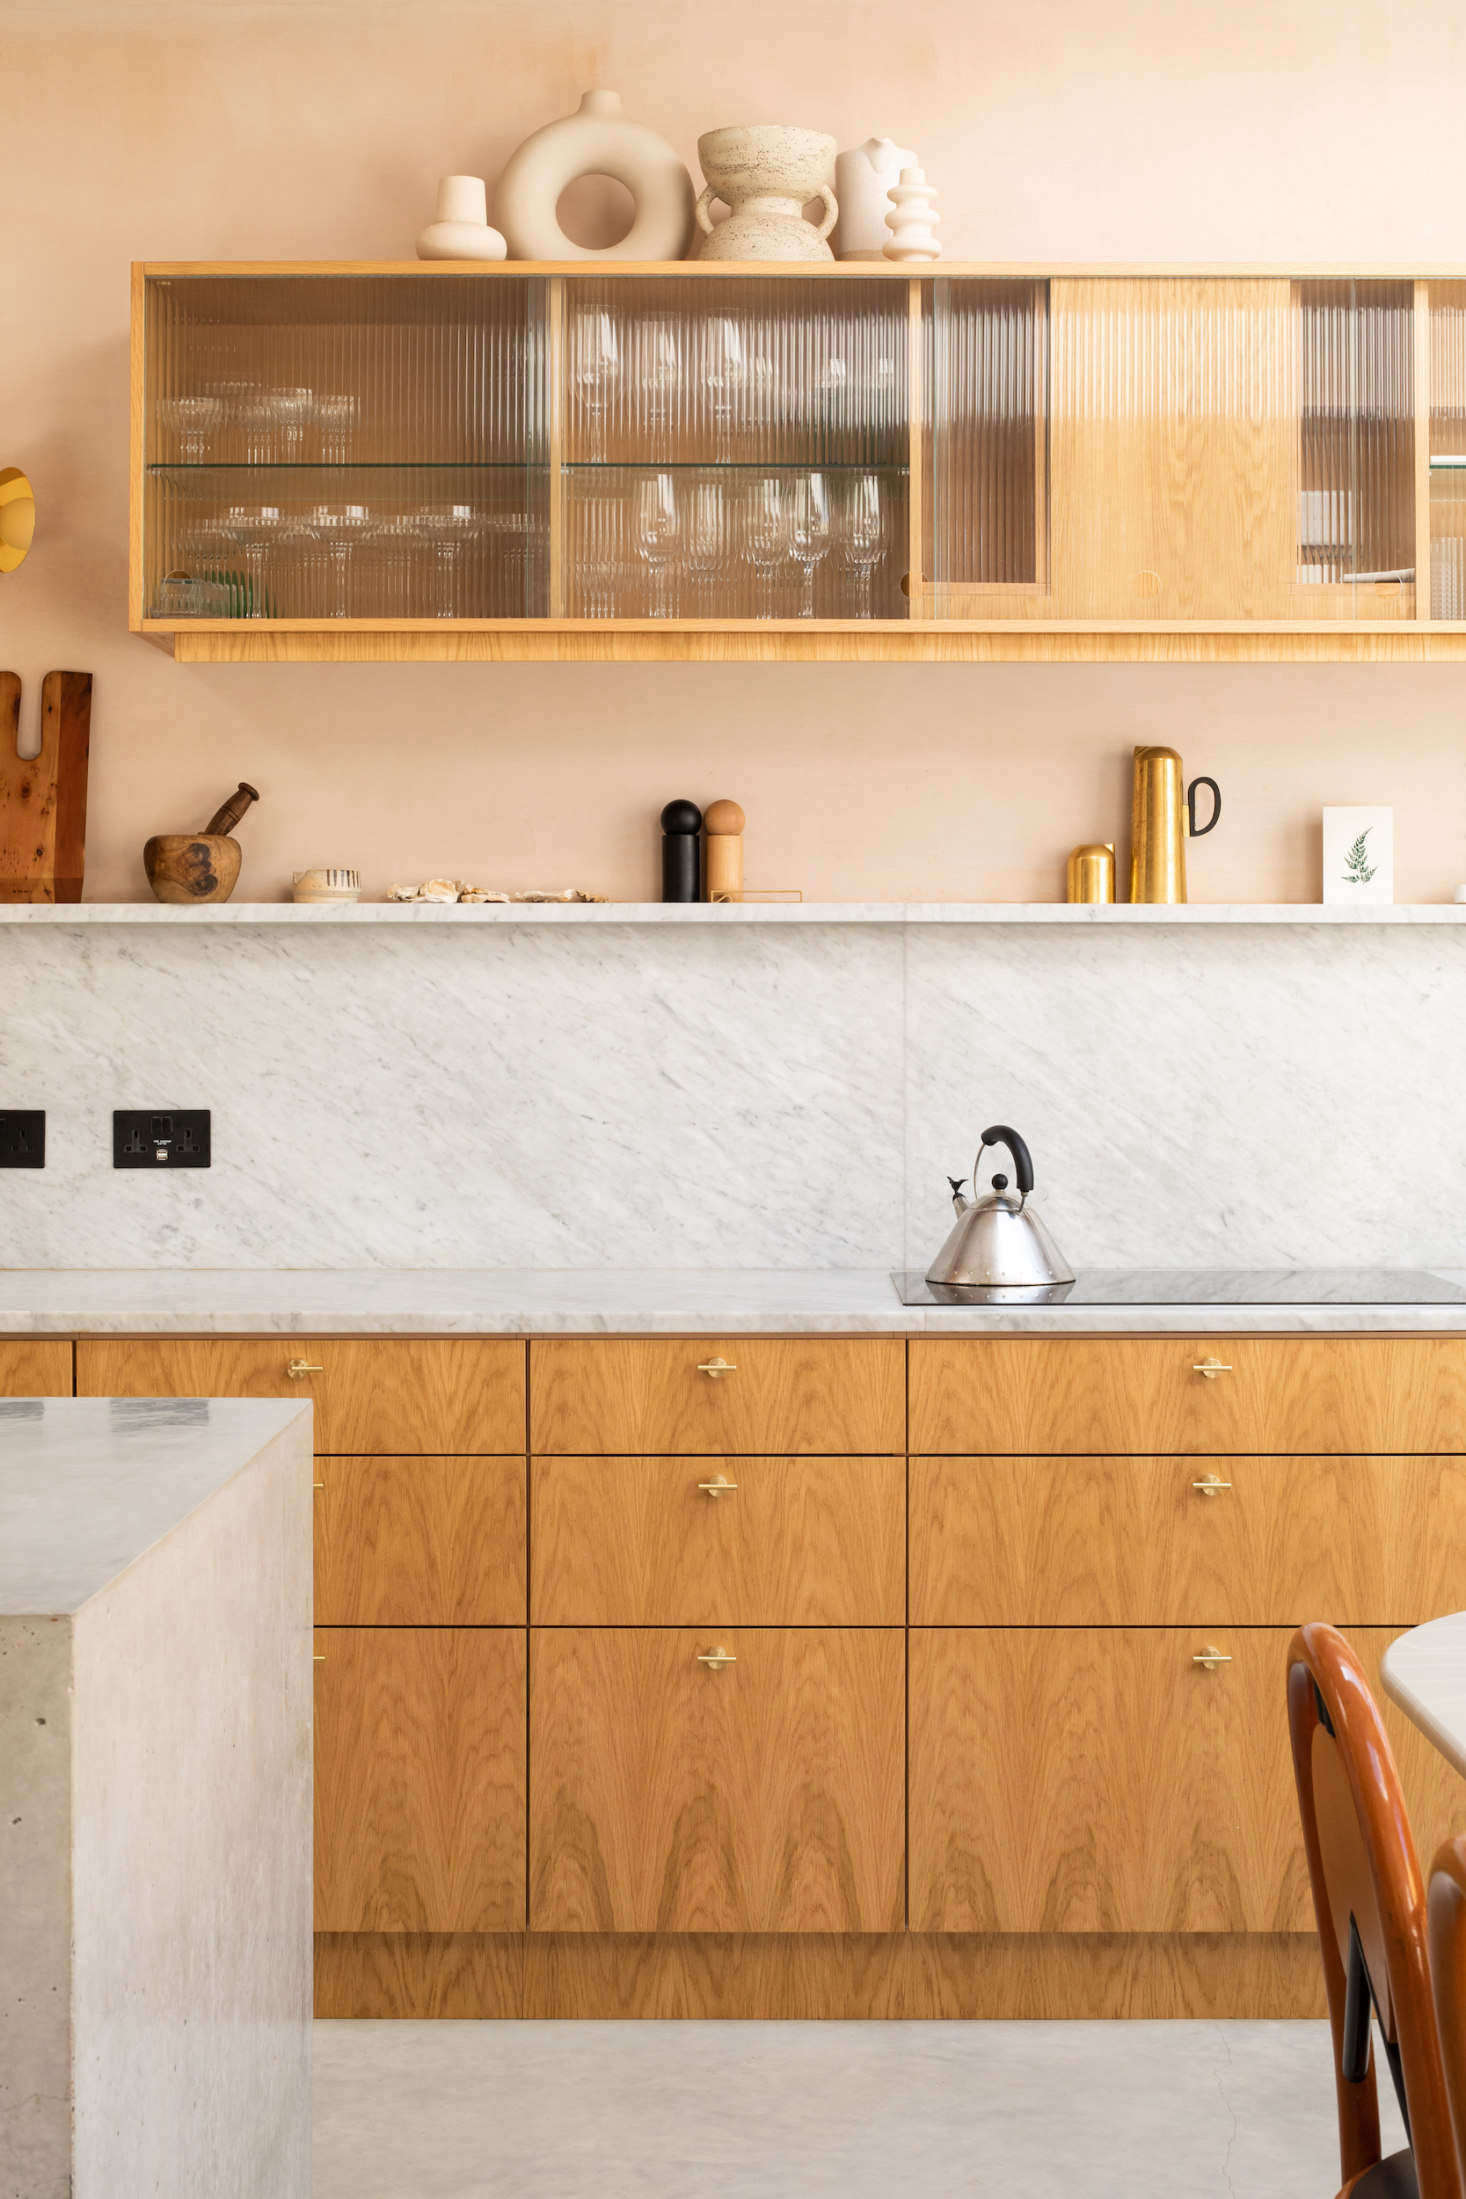 The cabinets were custom-made by the joinery experts at Oblique Furniture in London. The marble used for the countertop and backsplash was sourced from J&R Marble.